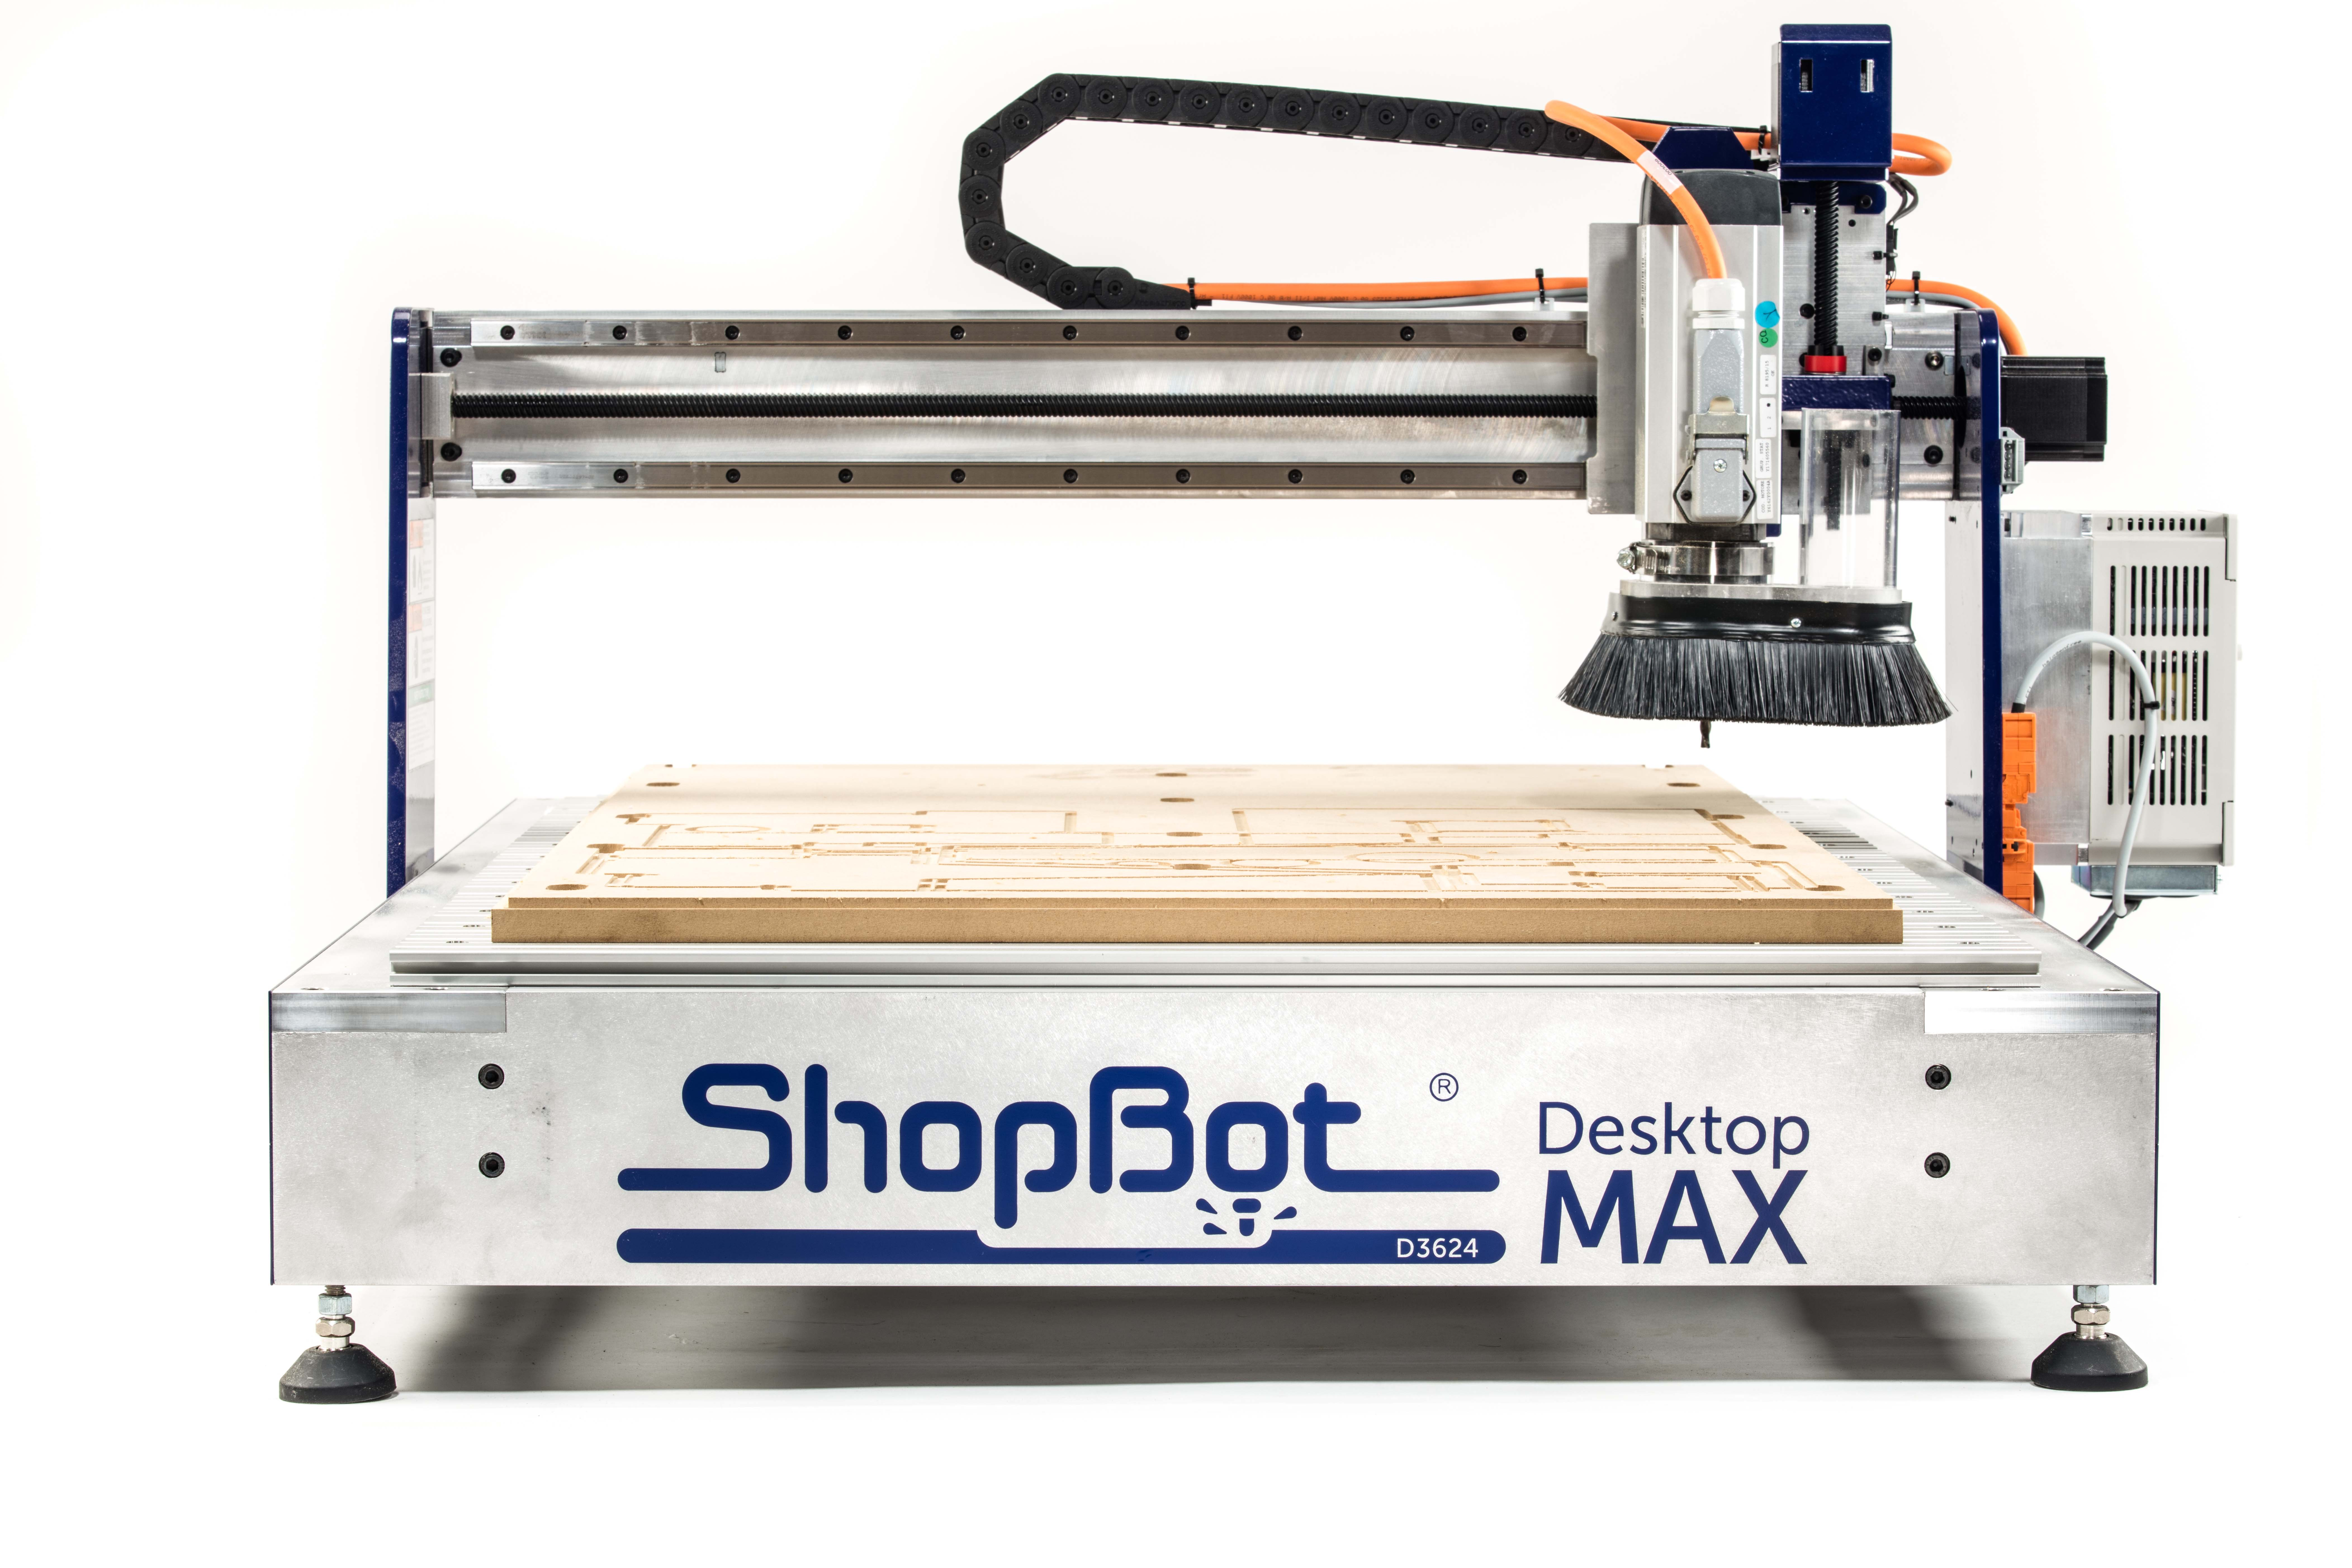 Review: Shopbot Desktop Max Gives Pro CNC Router Quality — For a Price